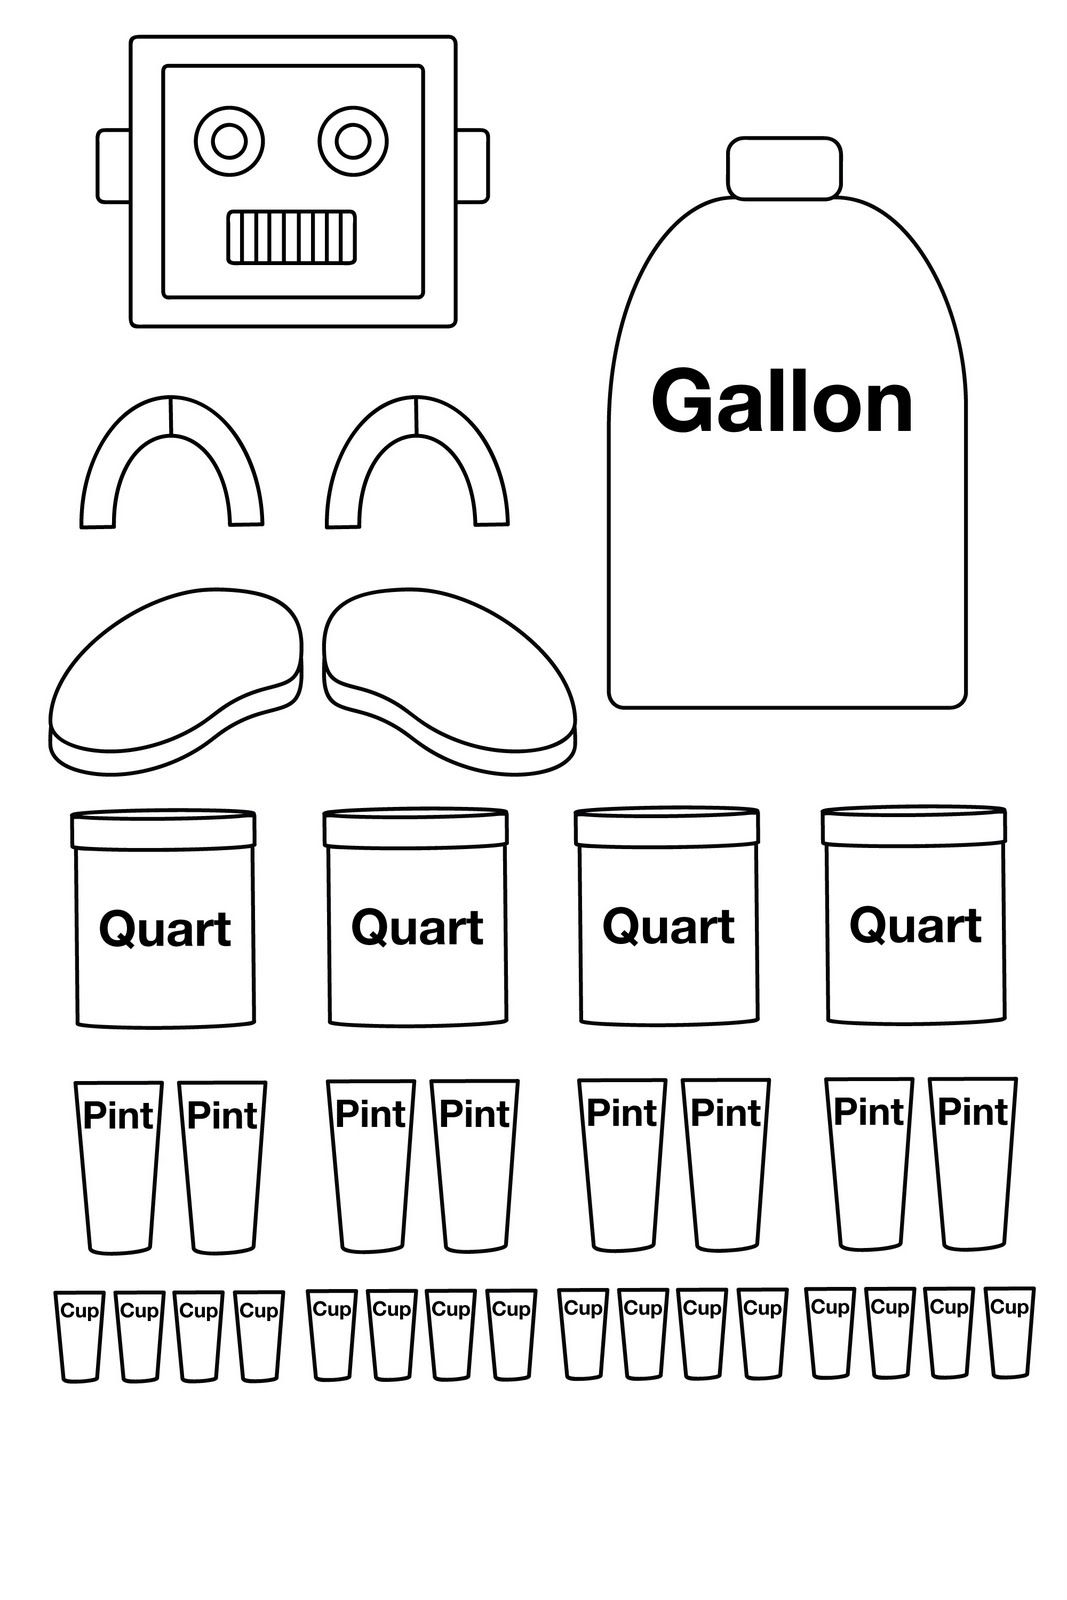 Gallon man worksheets grade 3